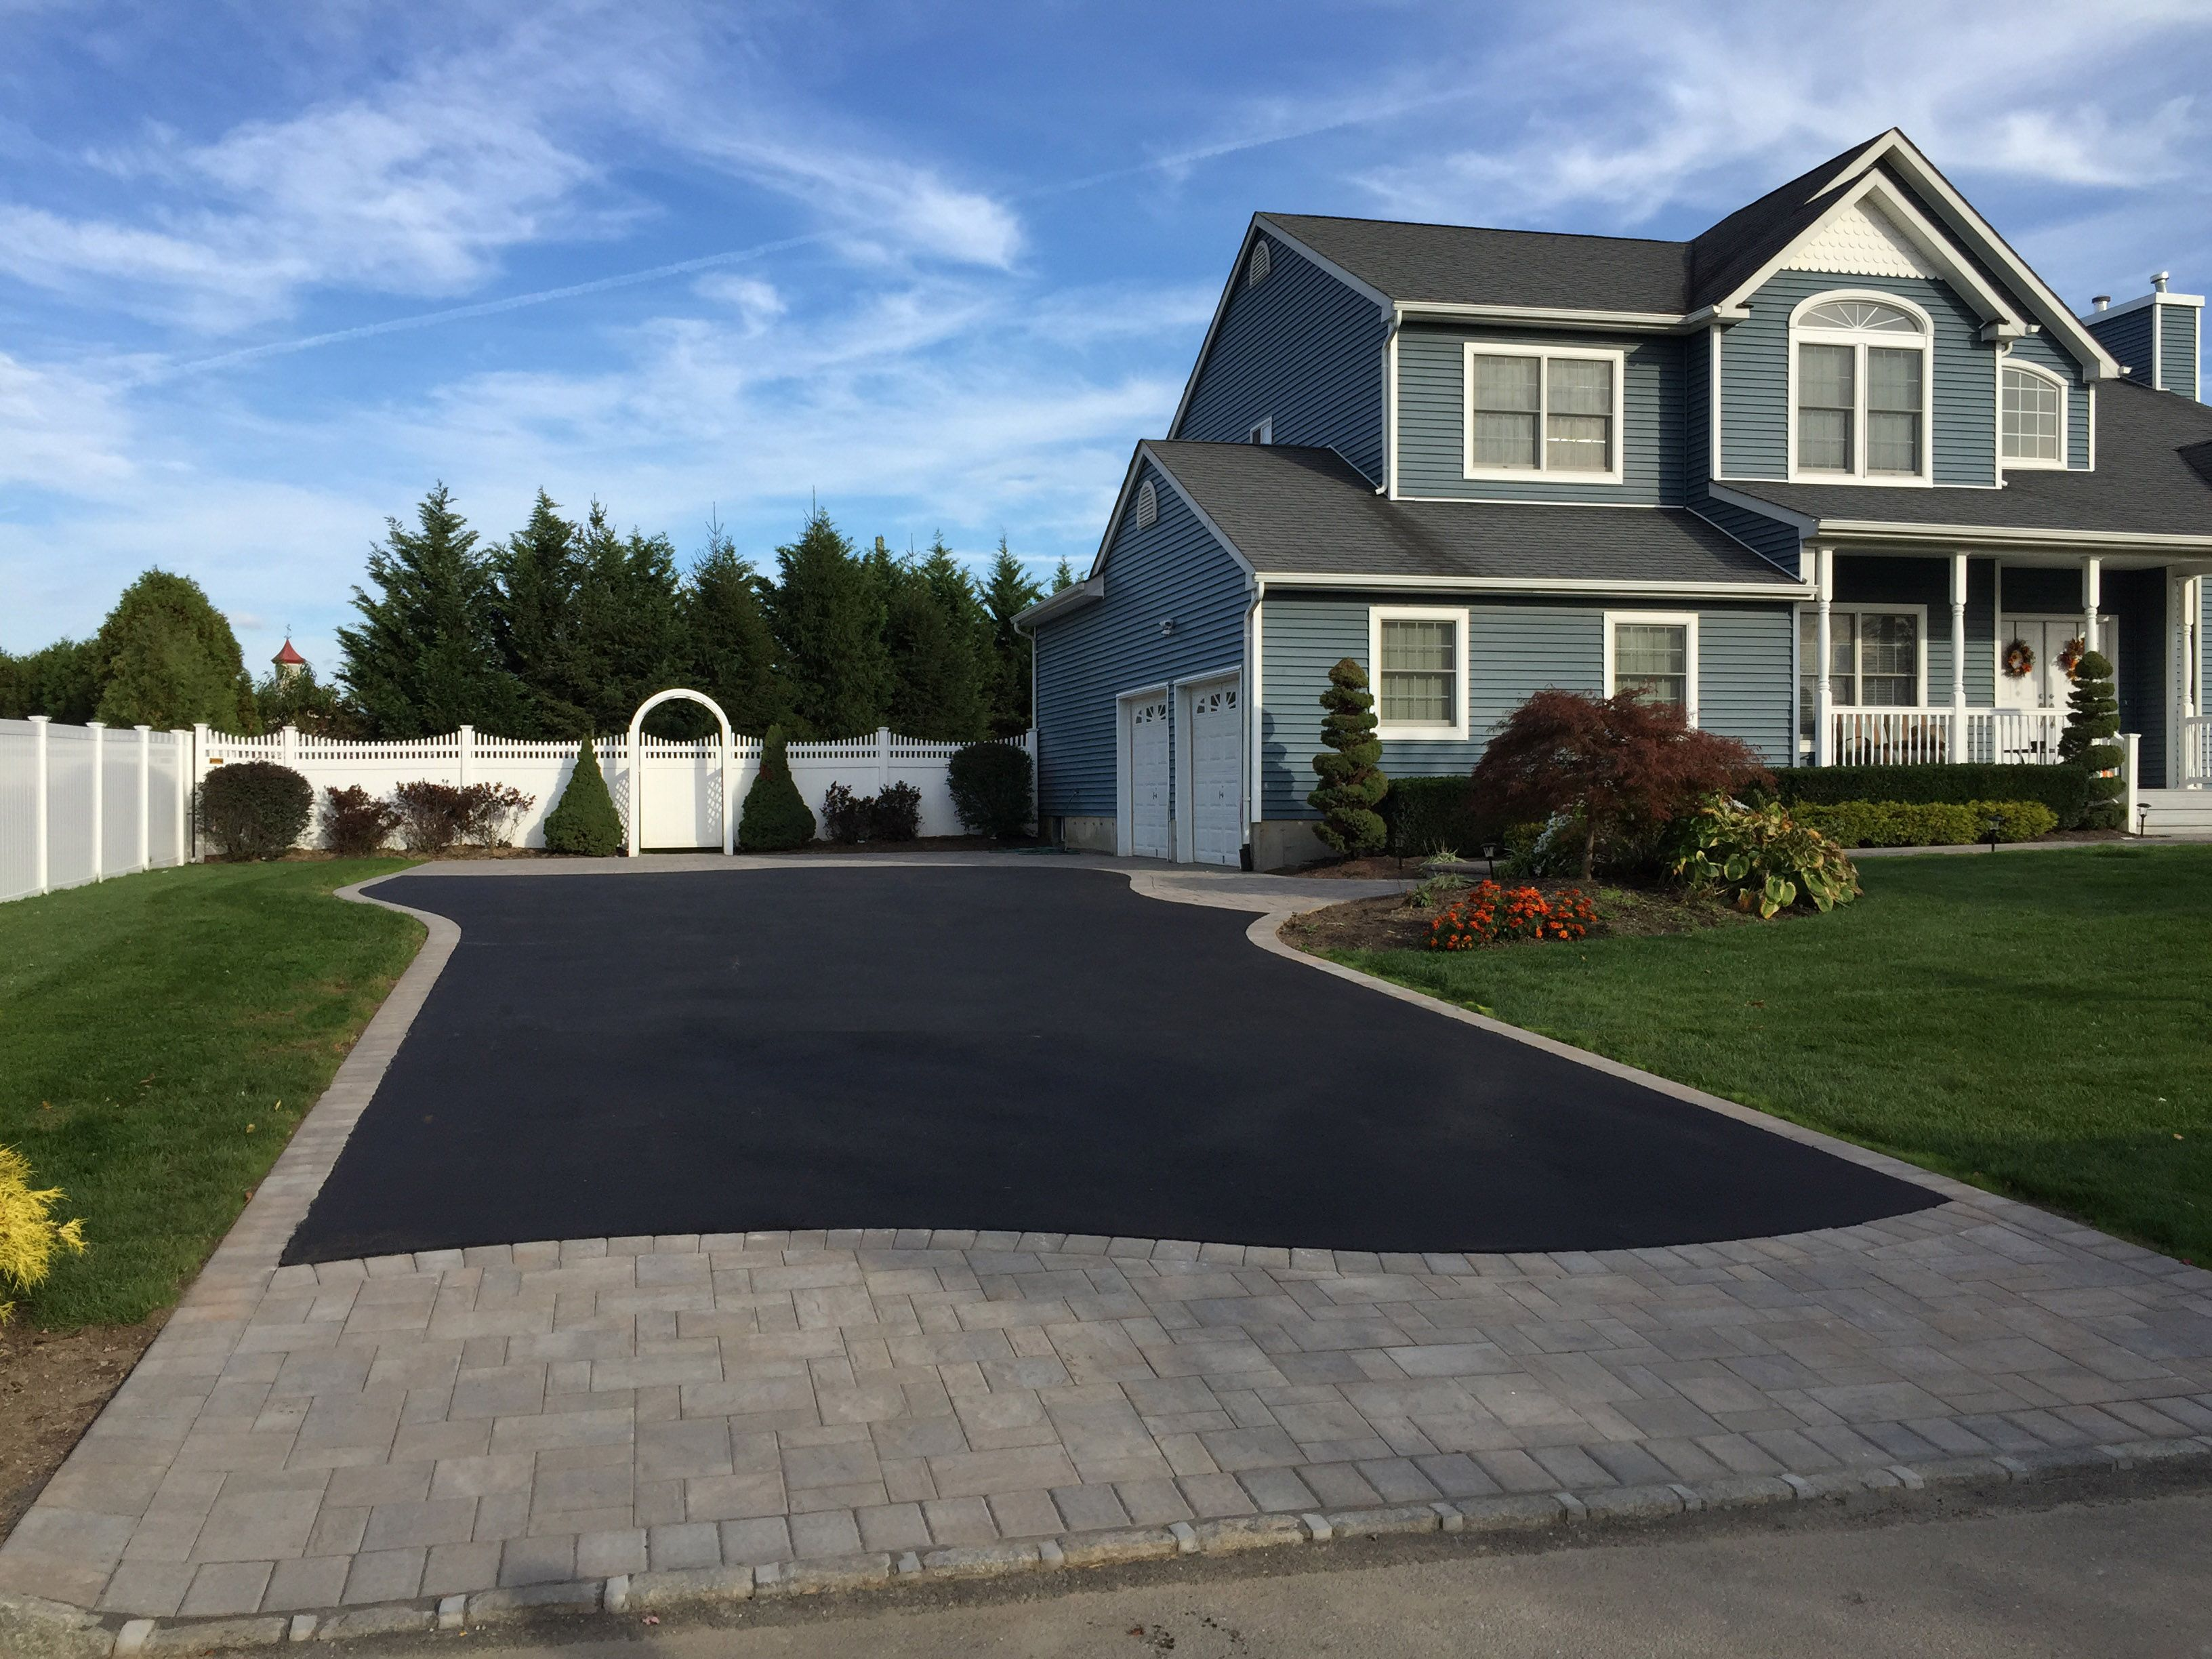 Asphalt Driveway With Cambridgepavers Borders Apron